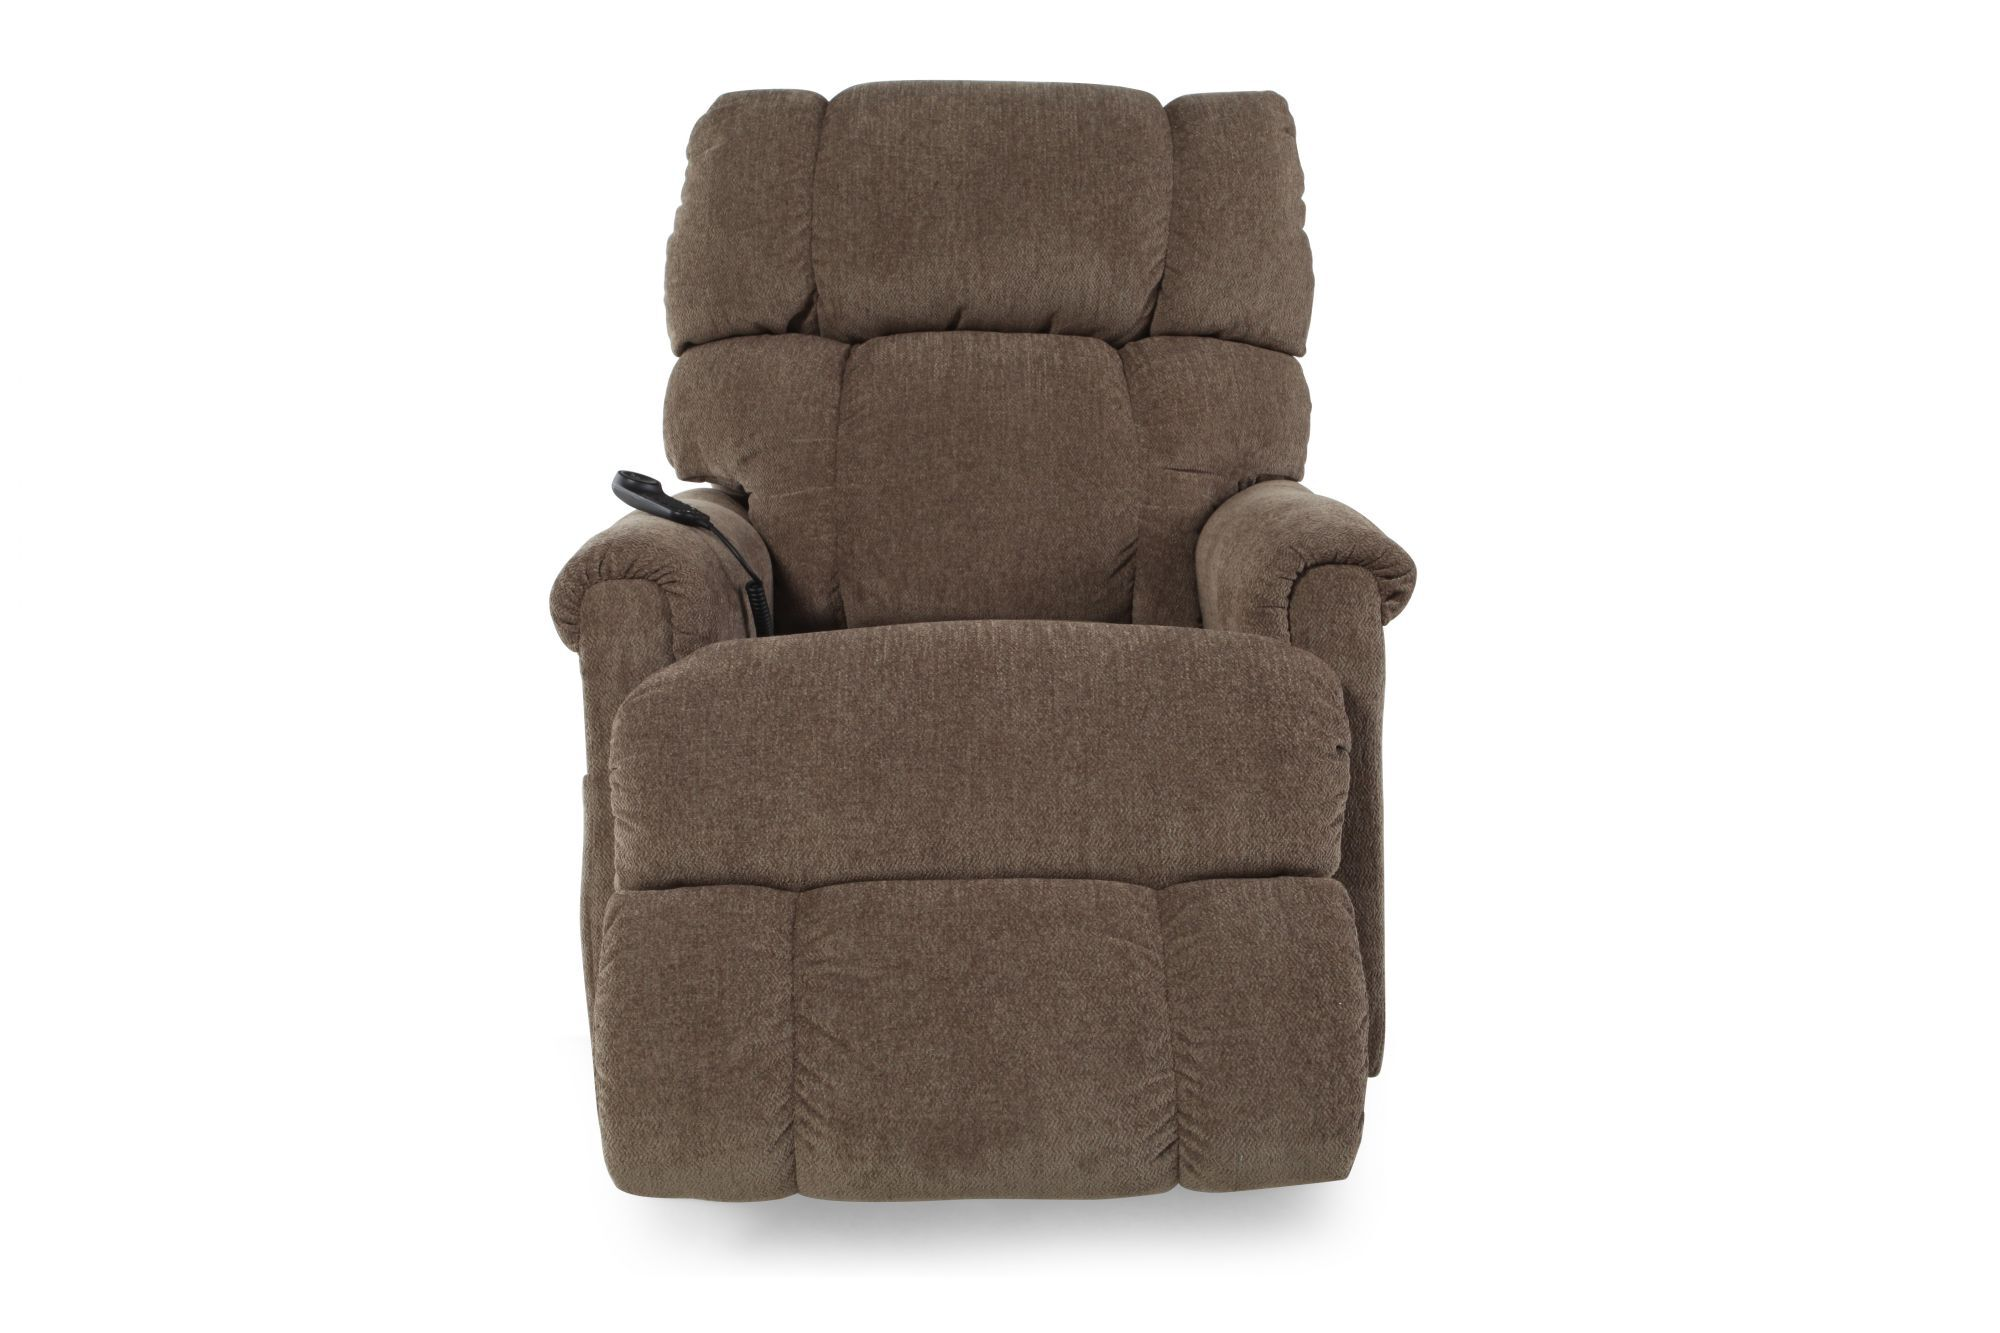 La-Z-Boy Pinnacle Tobacco Lift Recliner  sc 1 st  Mathis Brothers : lazy boy lift chairs recliners - islam-shia.org